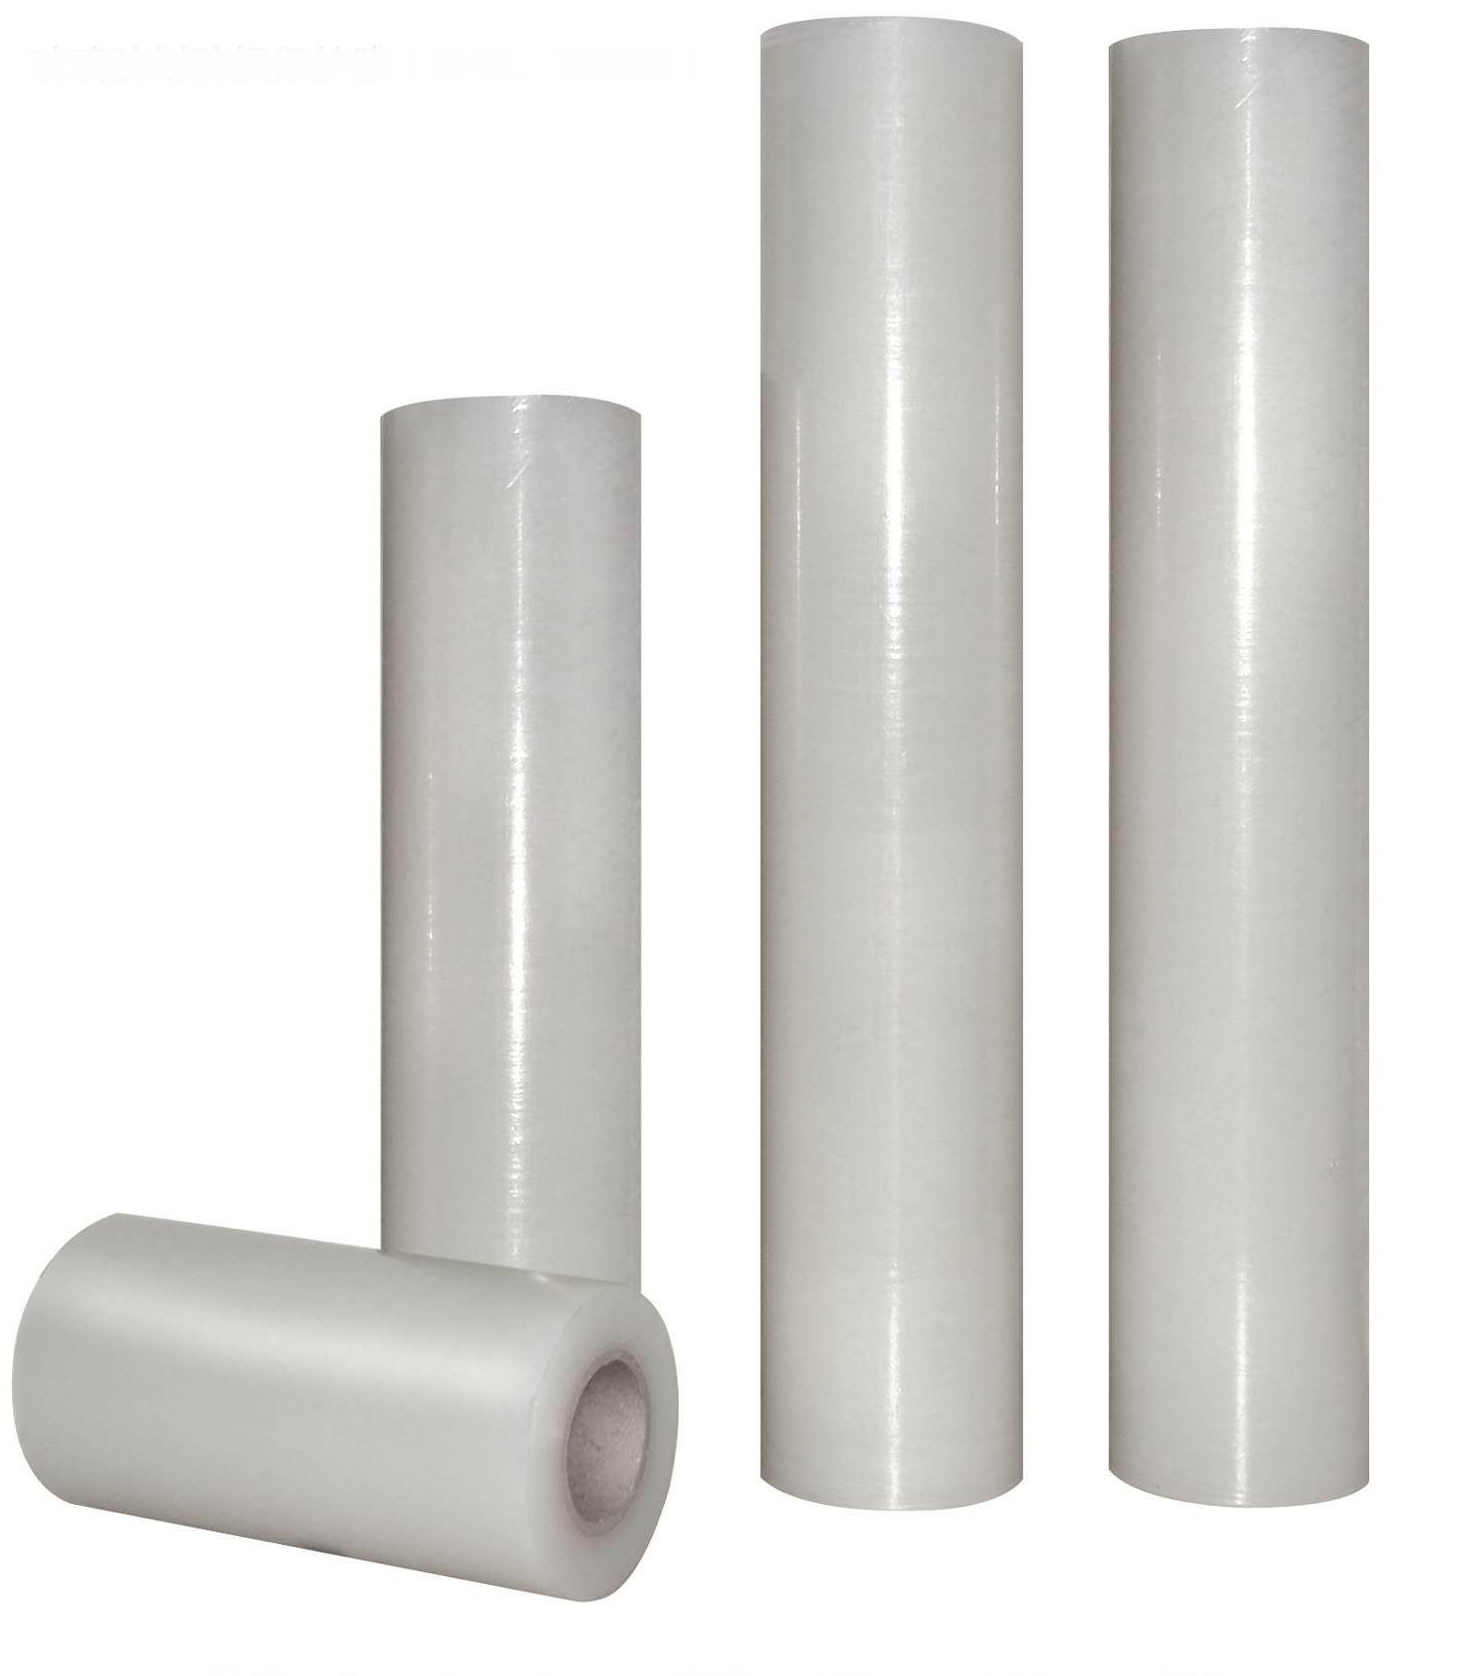 PE self-adhesive film